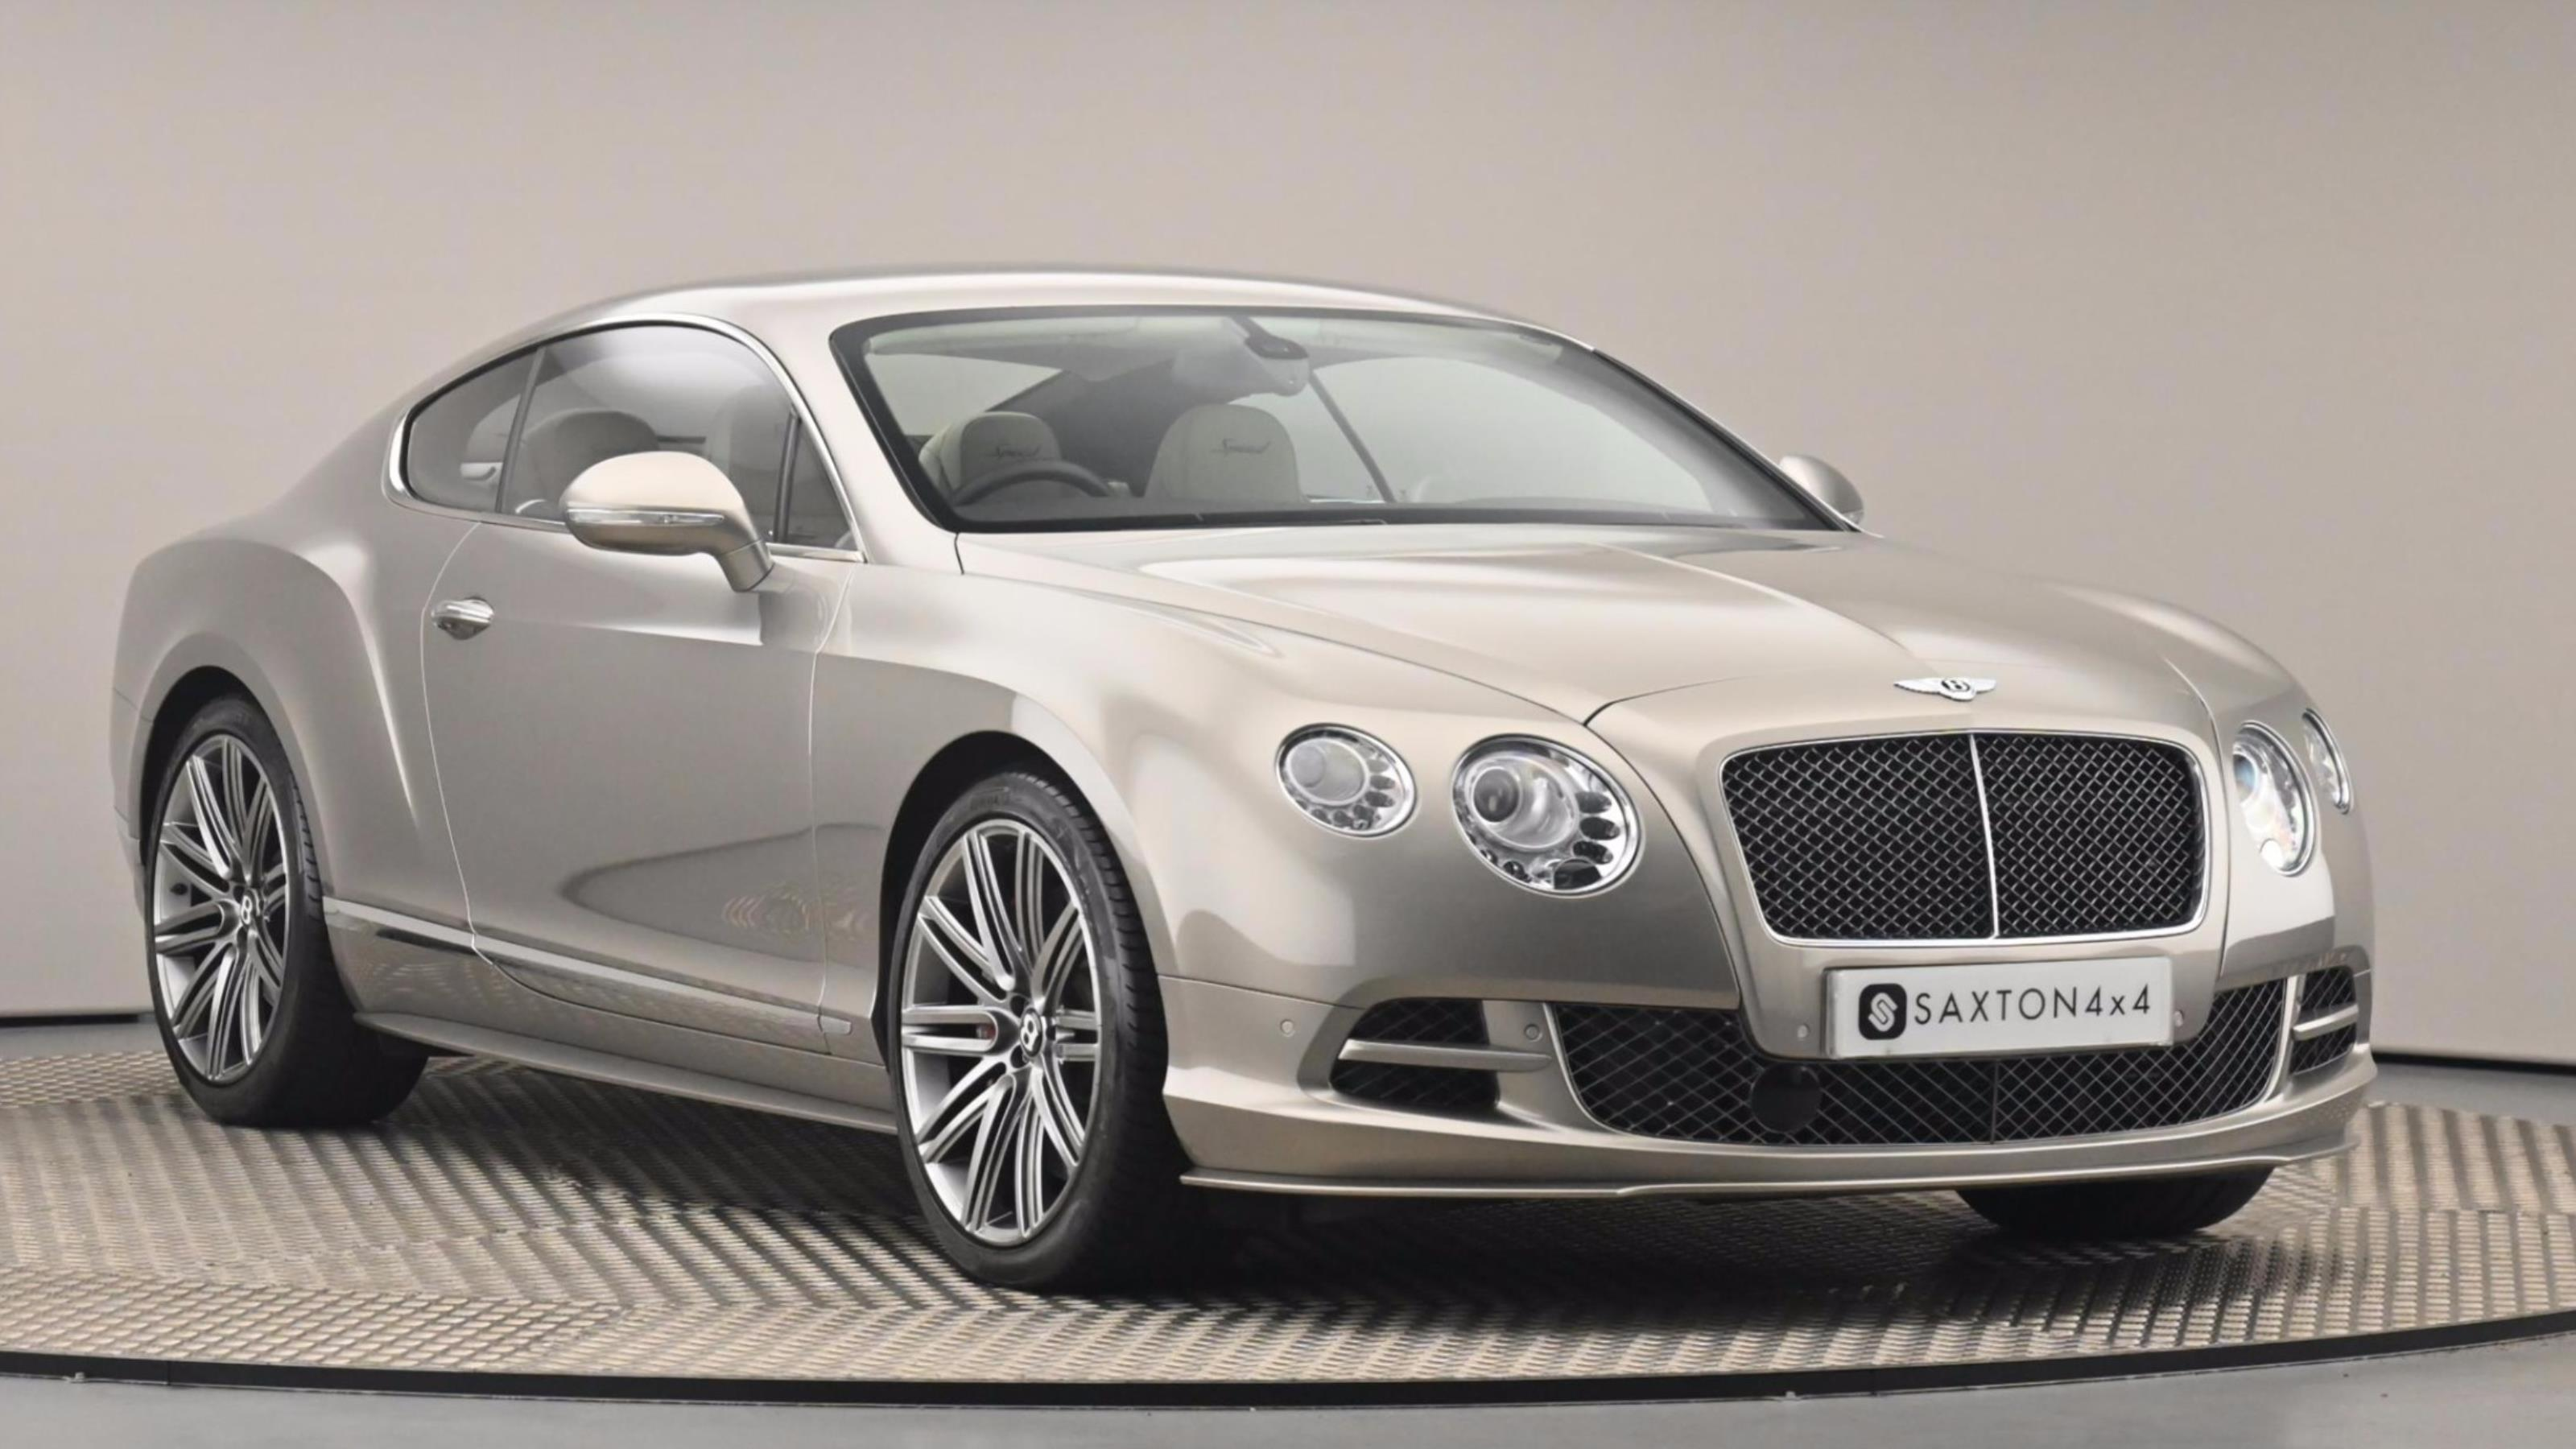 Used 2014 Bentley CONTINENTAL GT 6.0 W12 [635] Speed 2dr Auto GREY at Saxton4x4